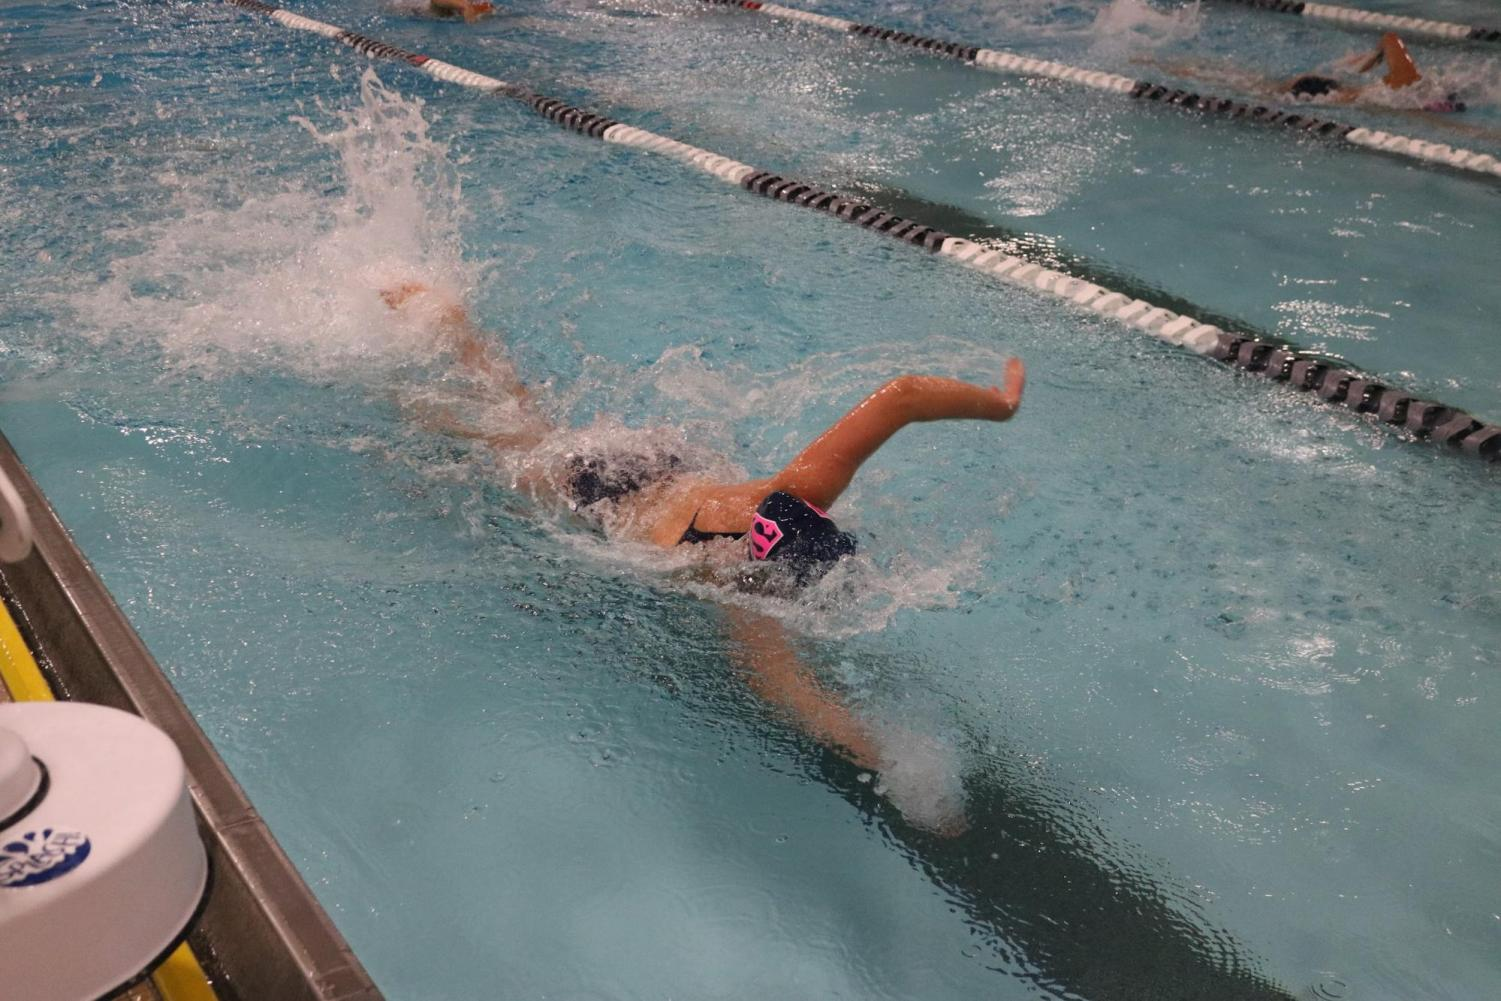 A swimmer on the Staples girls' swim and dive team is racing as fast as she can in order to try and win her event. She is focusing on her technique and energy, not the possibility of her swimsuit shifting around in the water.